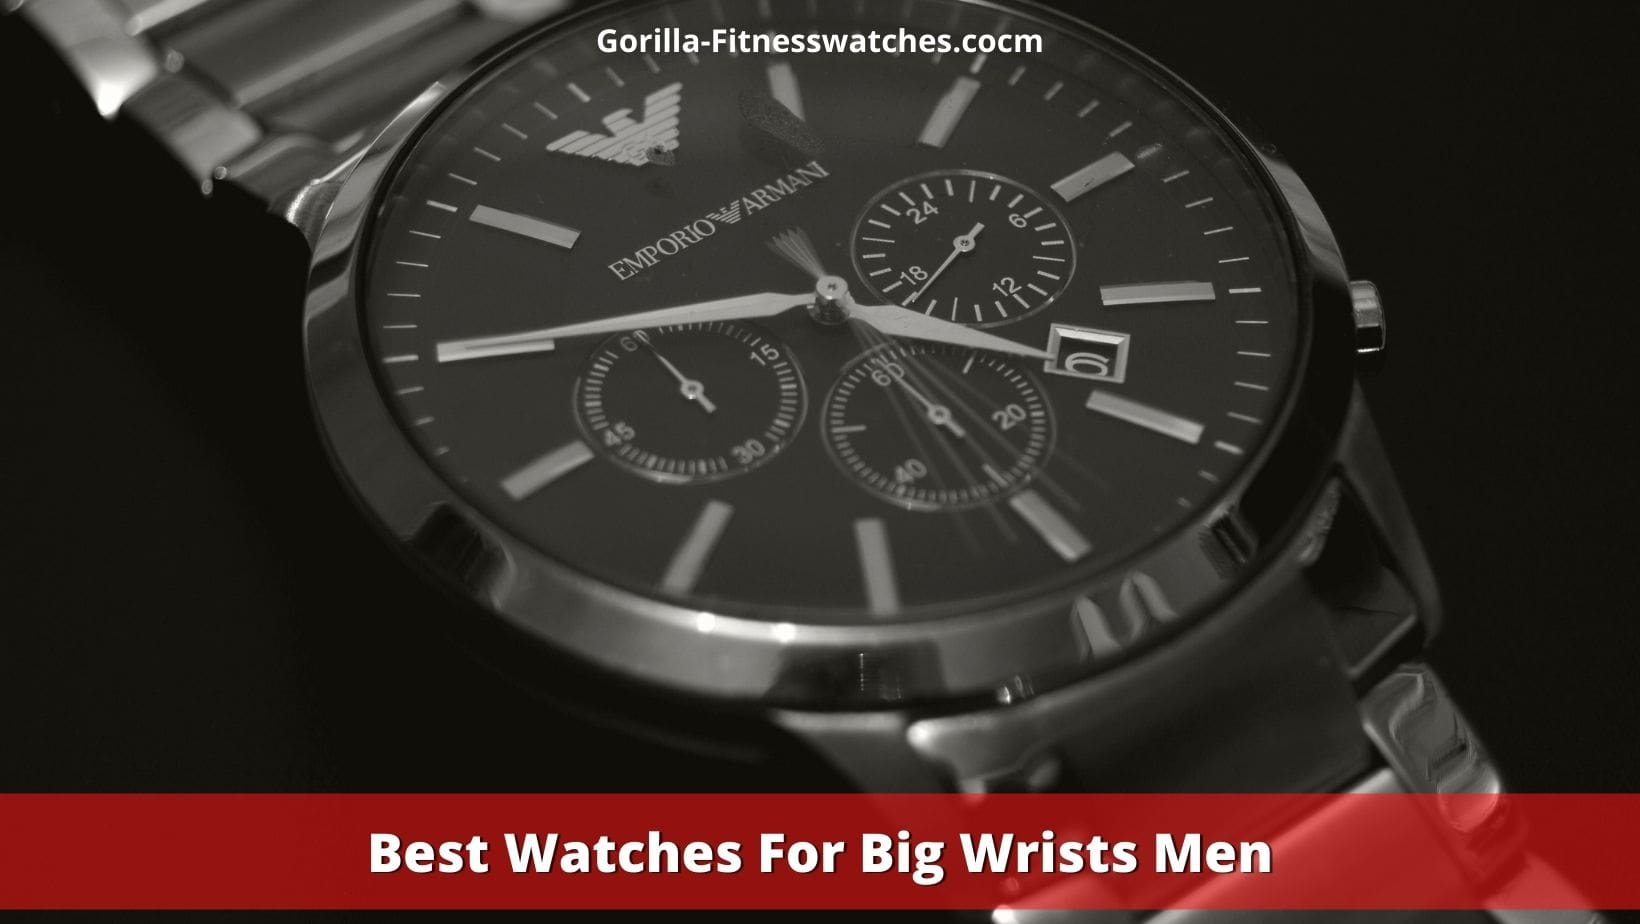 Best Watches For Big Wrists Men